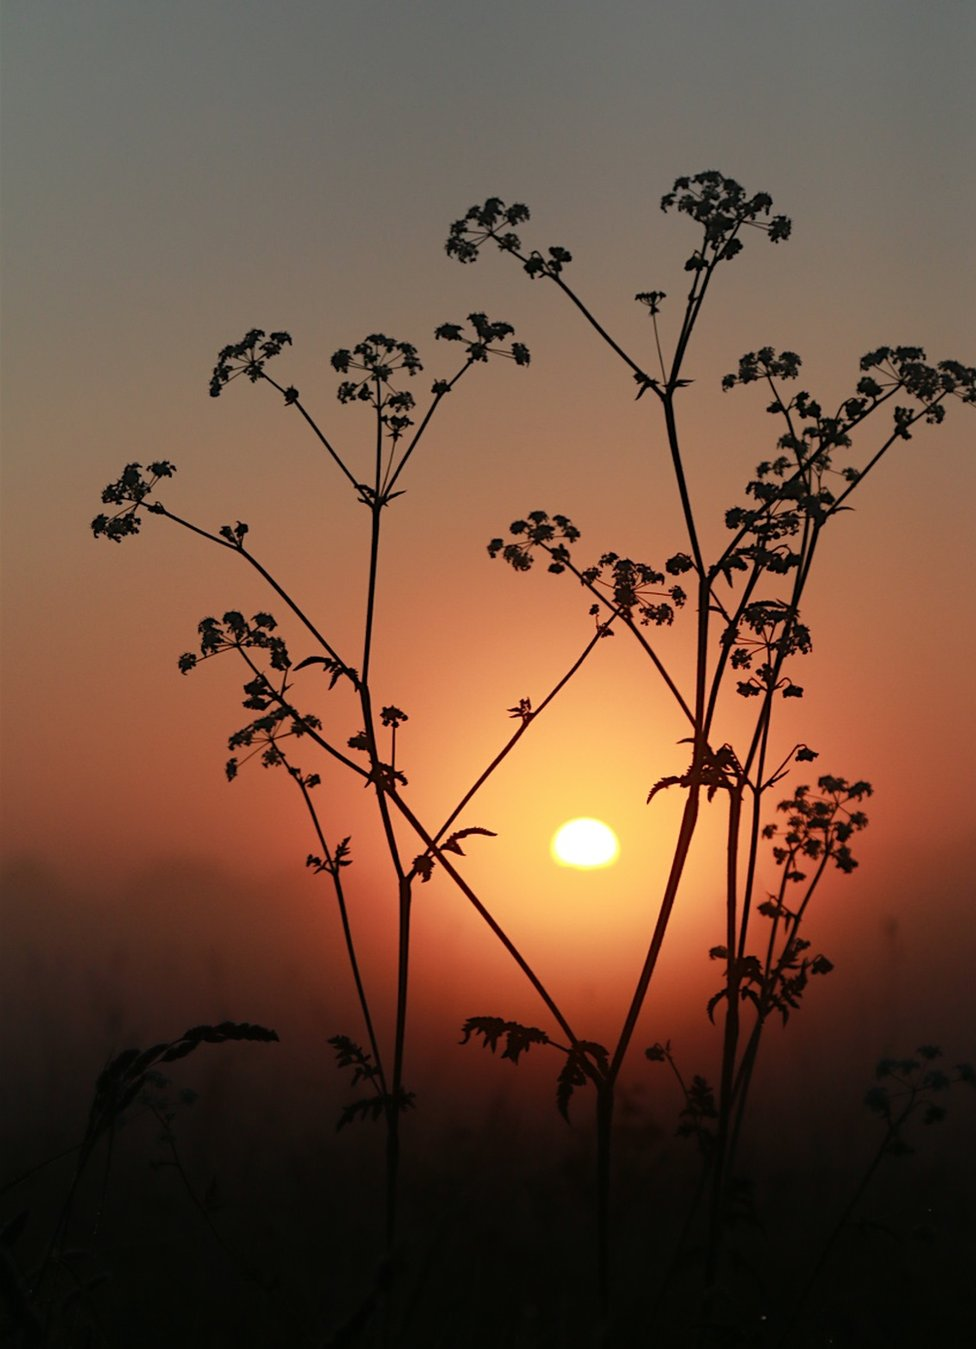 A silhouette of a plant against the sunset